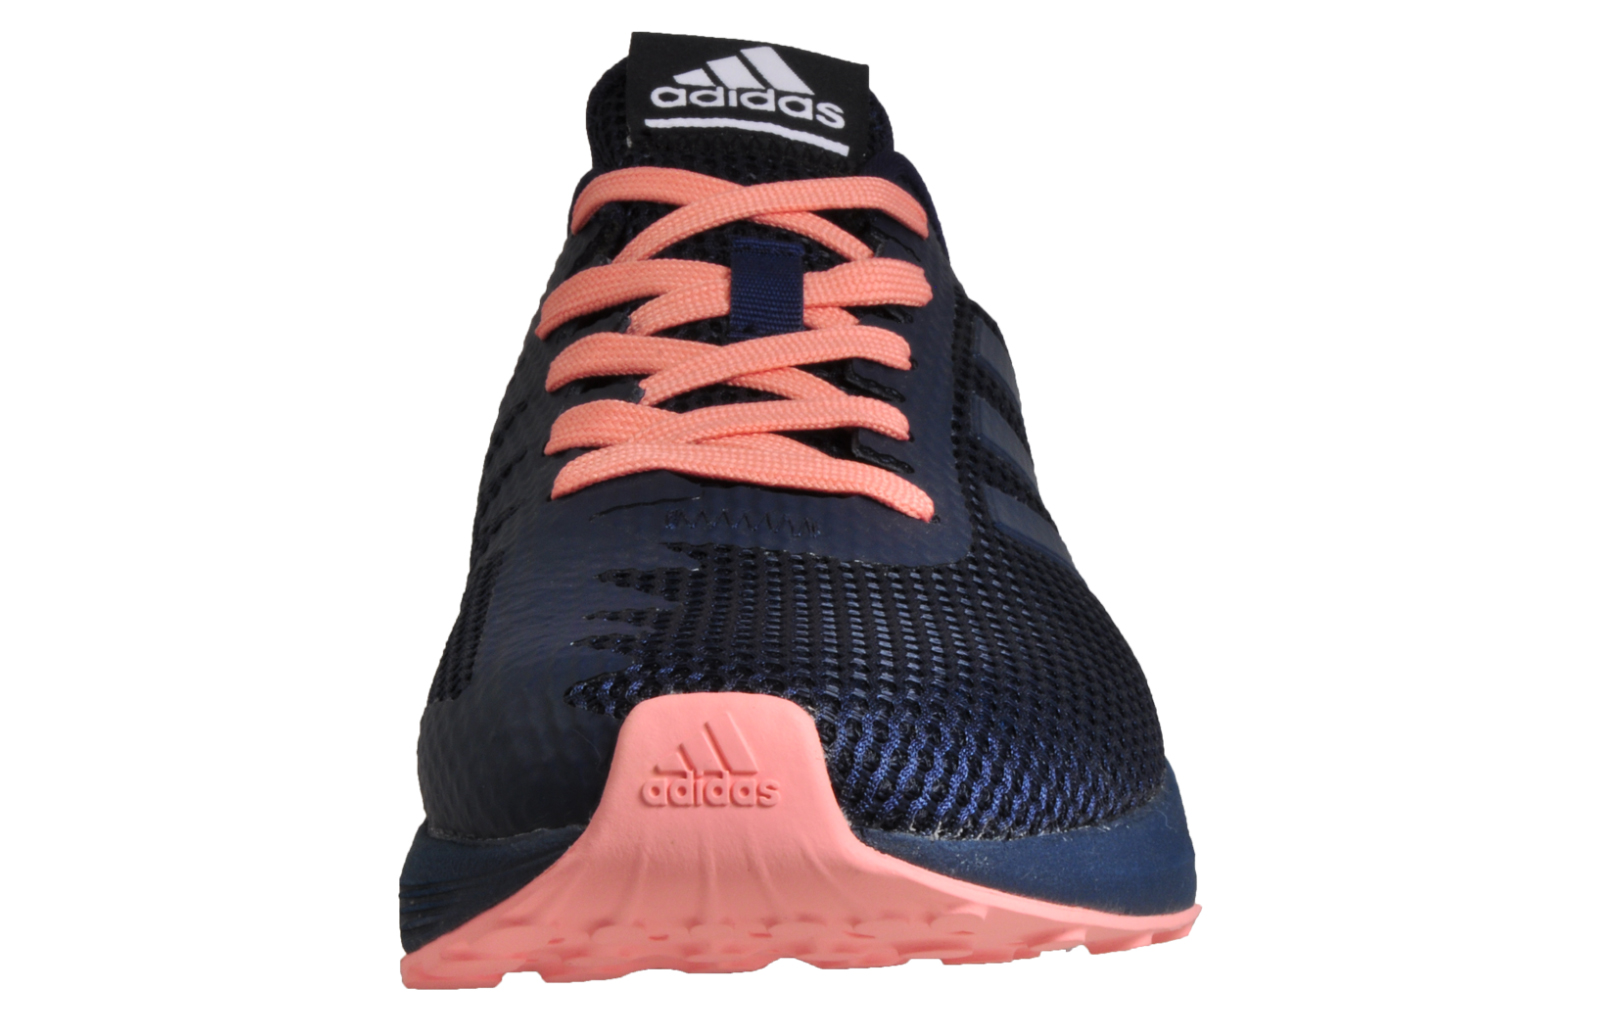 9417b138b974 Adidas Vengeful Boost Women s Running Shoes Fitness Gym Workout ...